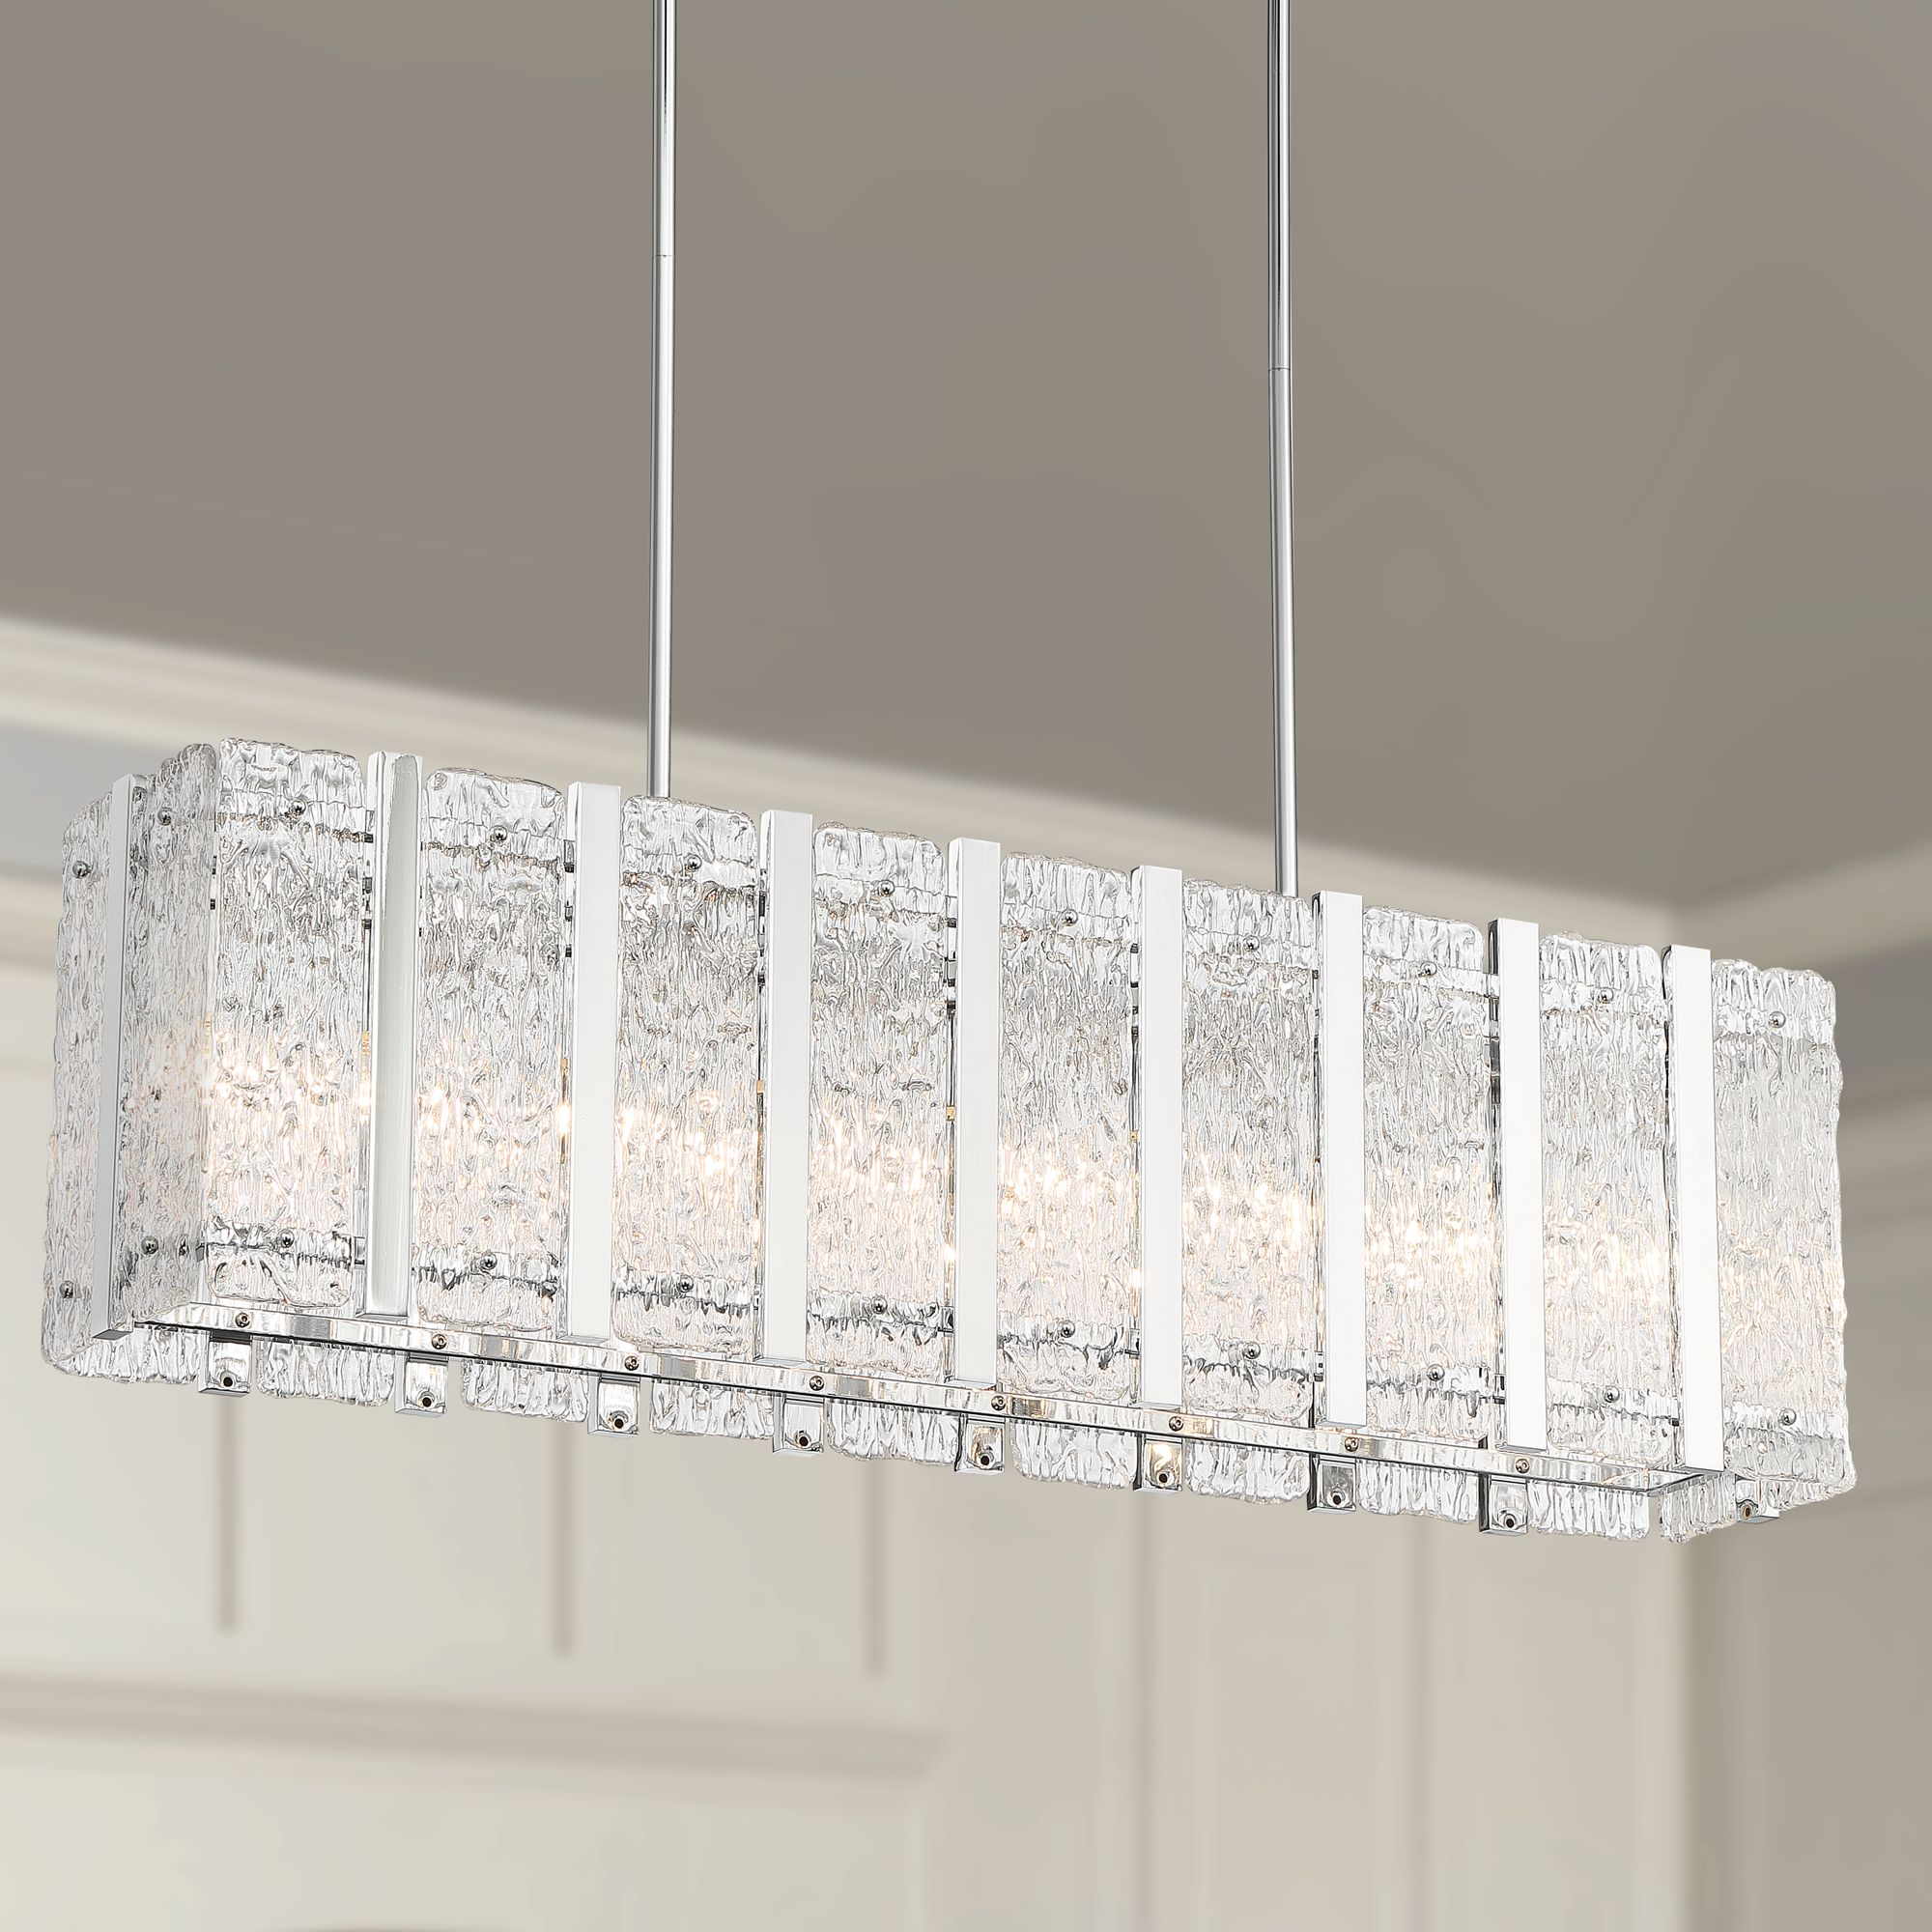 Possini Euro Design Chrome Large Rectangular Island Pendant Chandelier 35 1 4 Wide Modern Glass 9 Light Fixture Kitchen Island Walmart Com Walmart Com